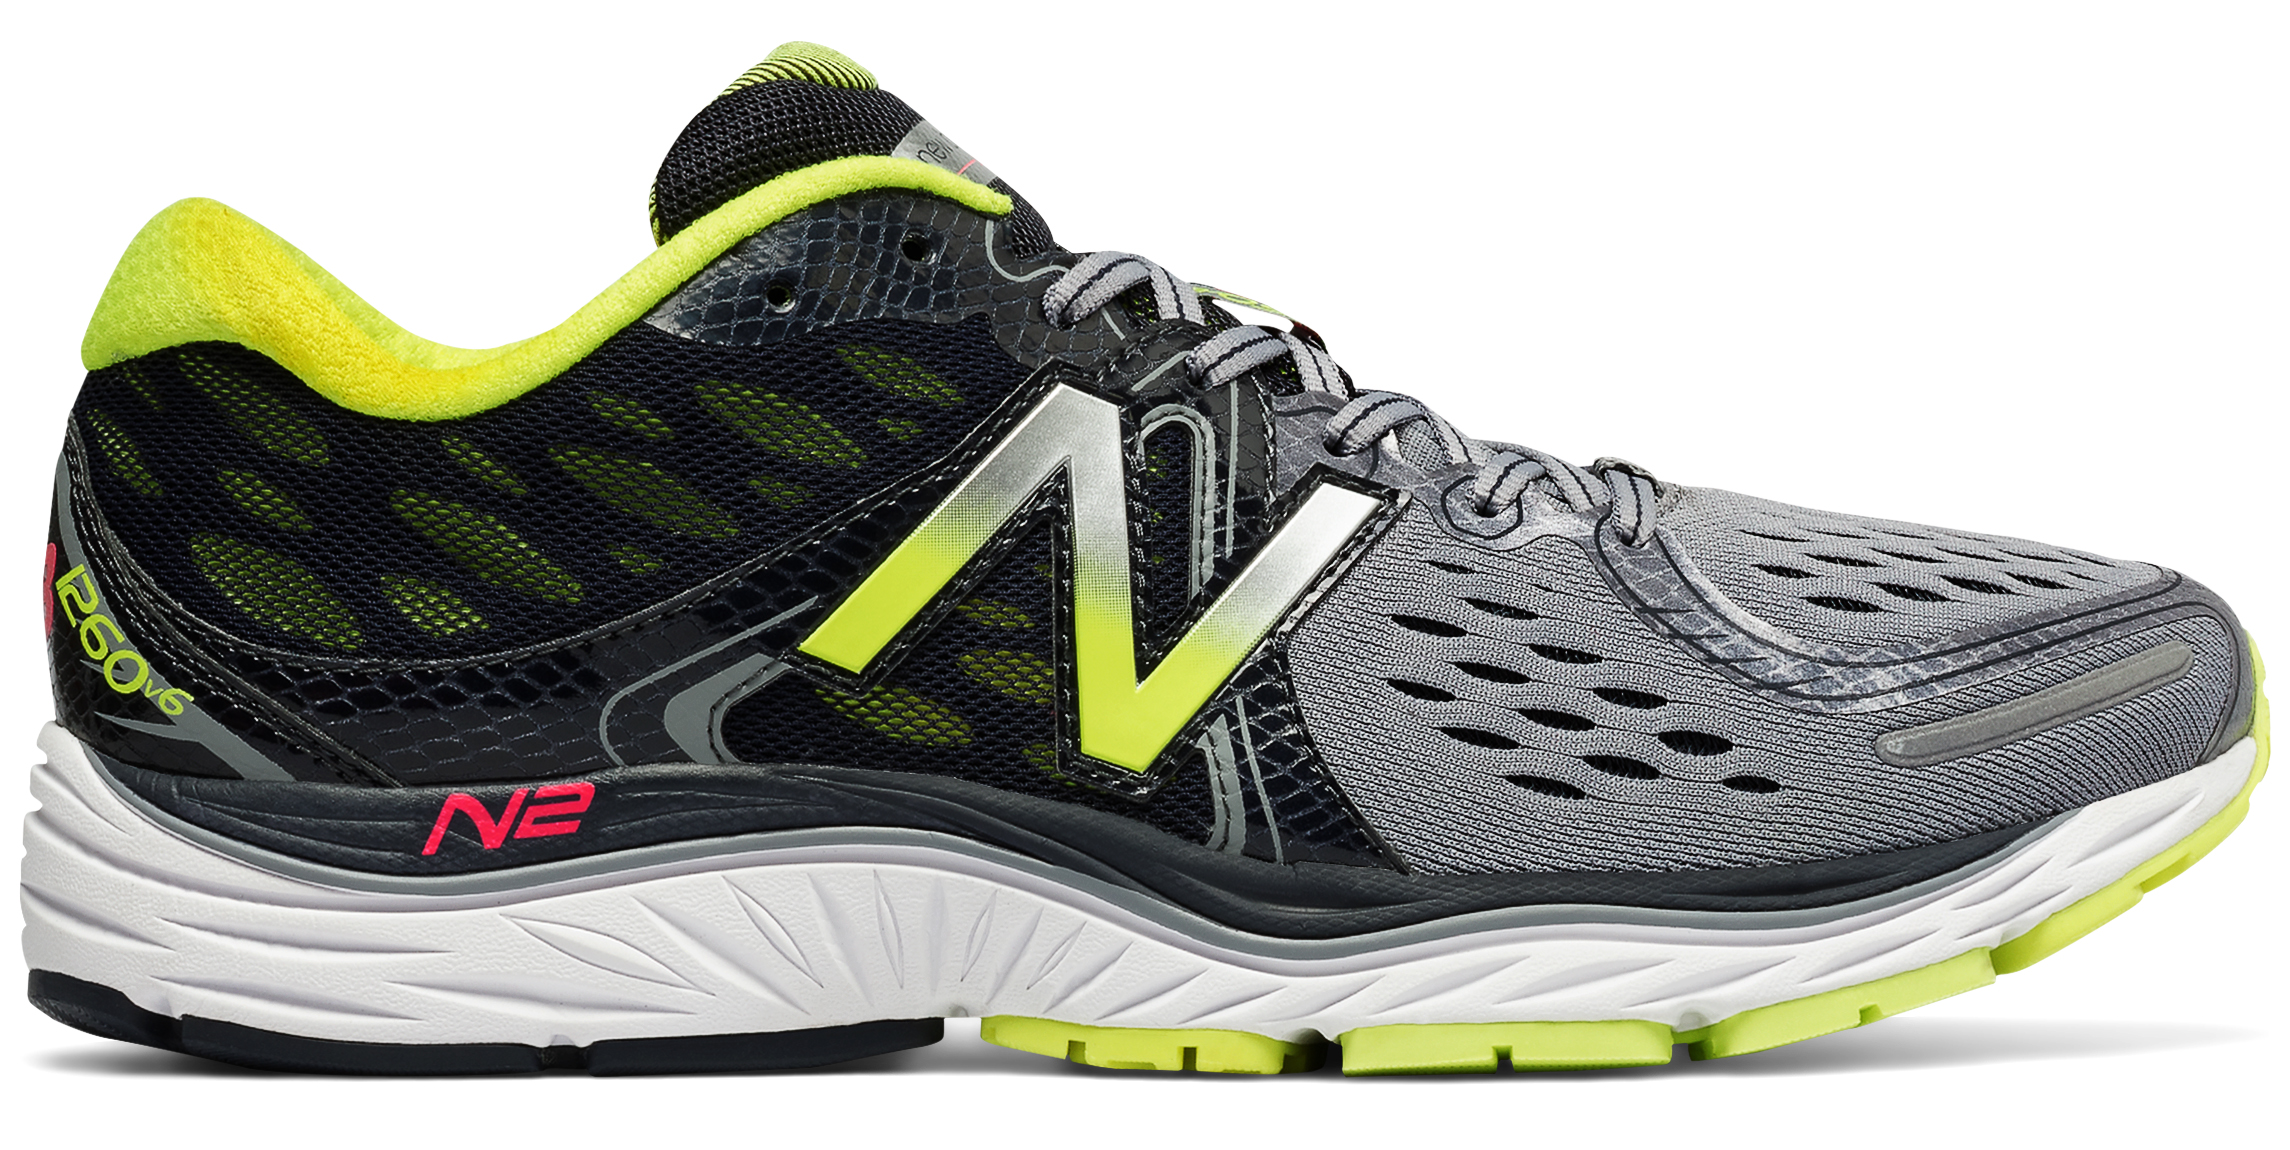 1260v6 New Balance Running Road Men's Shoes zVSGpqUM